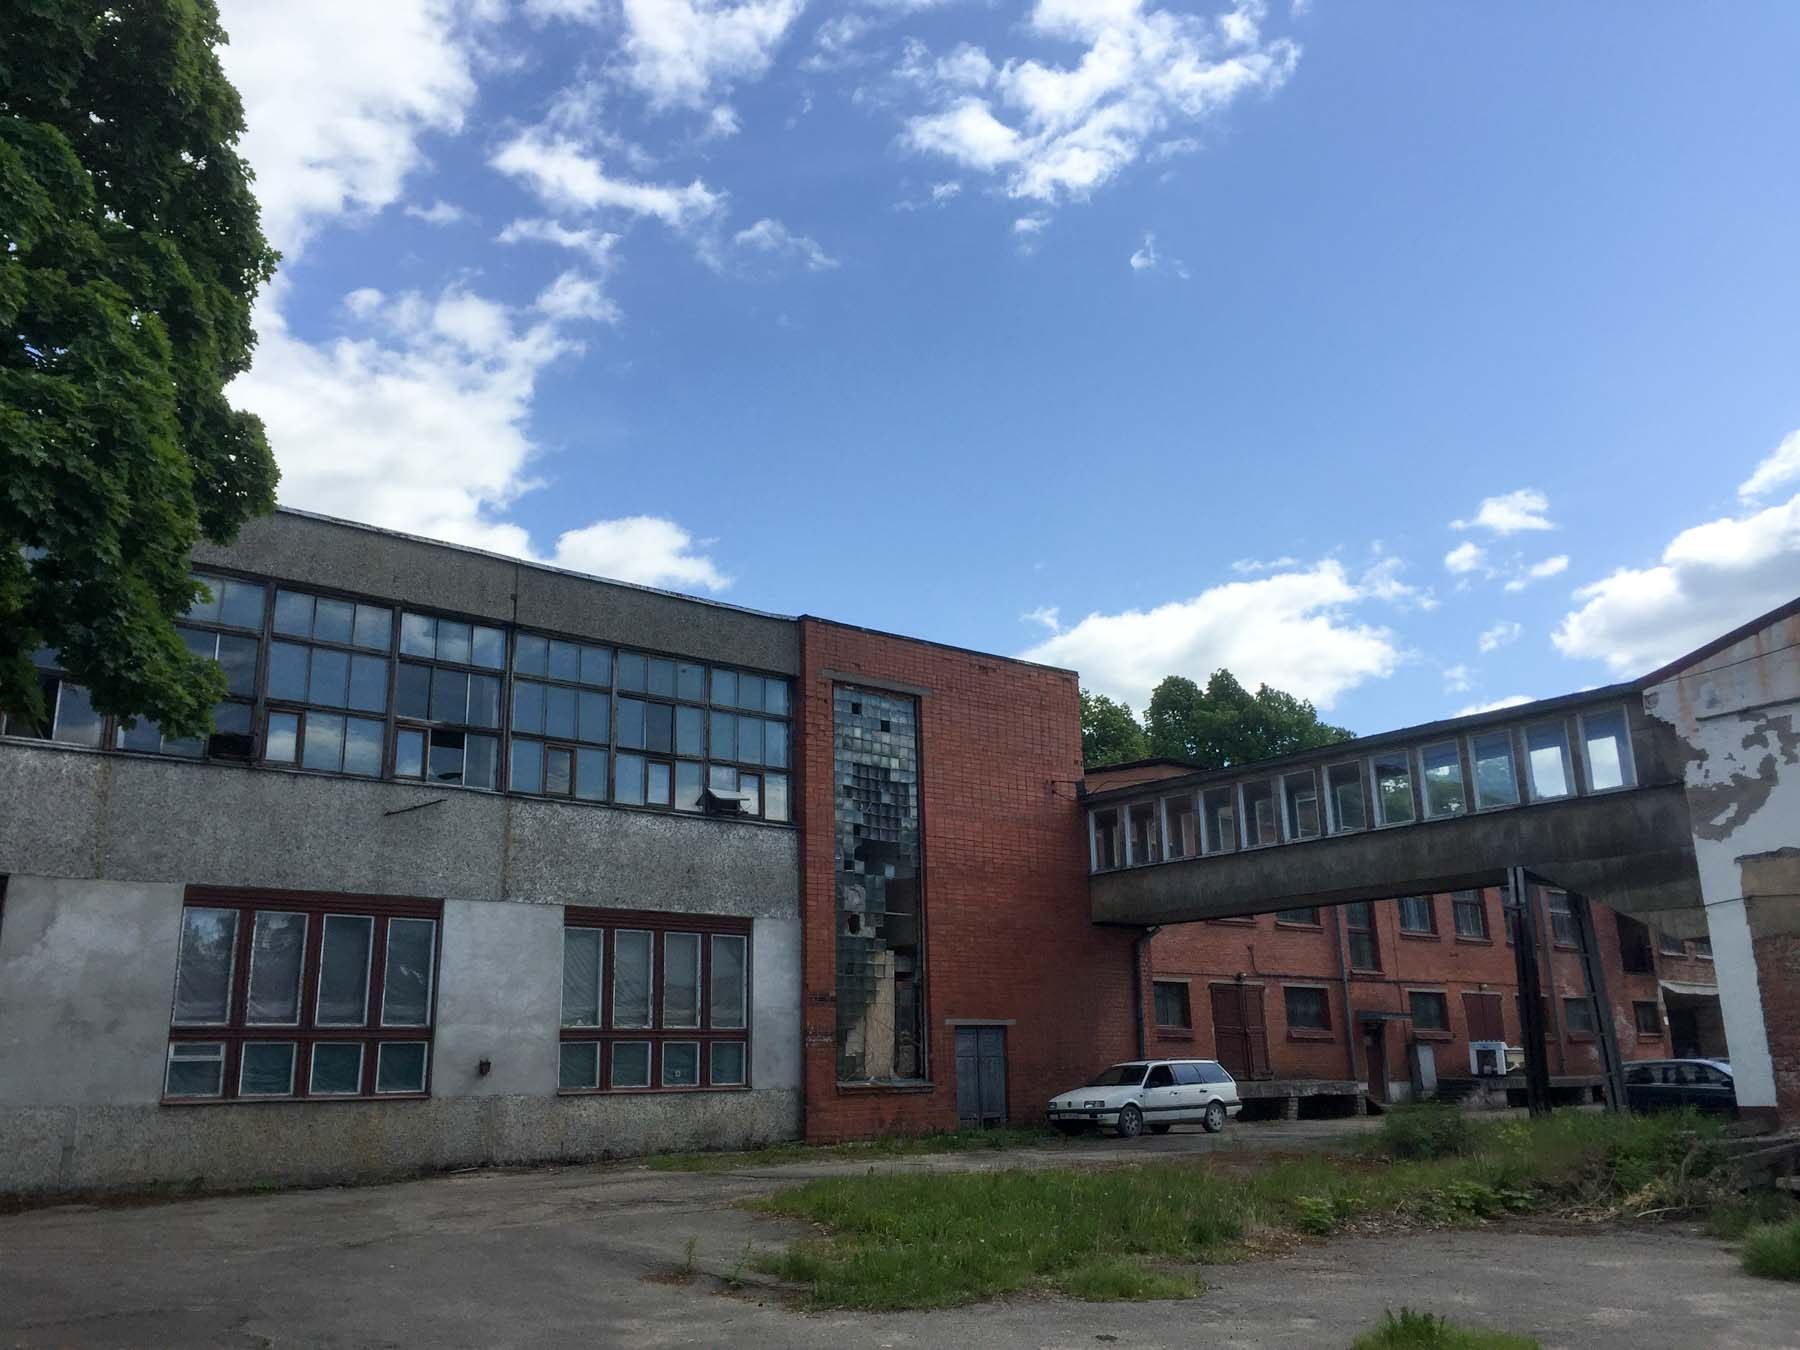 empty buildings in Cesis, Latvia